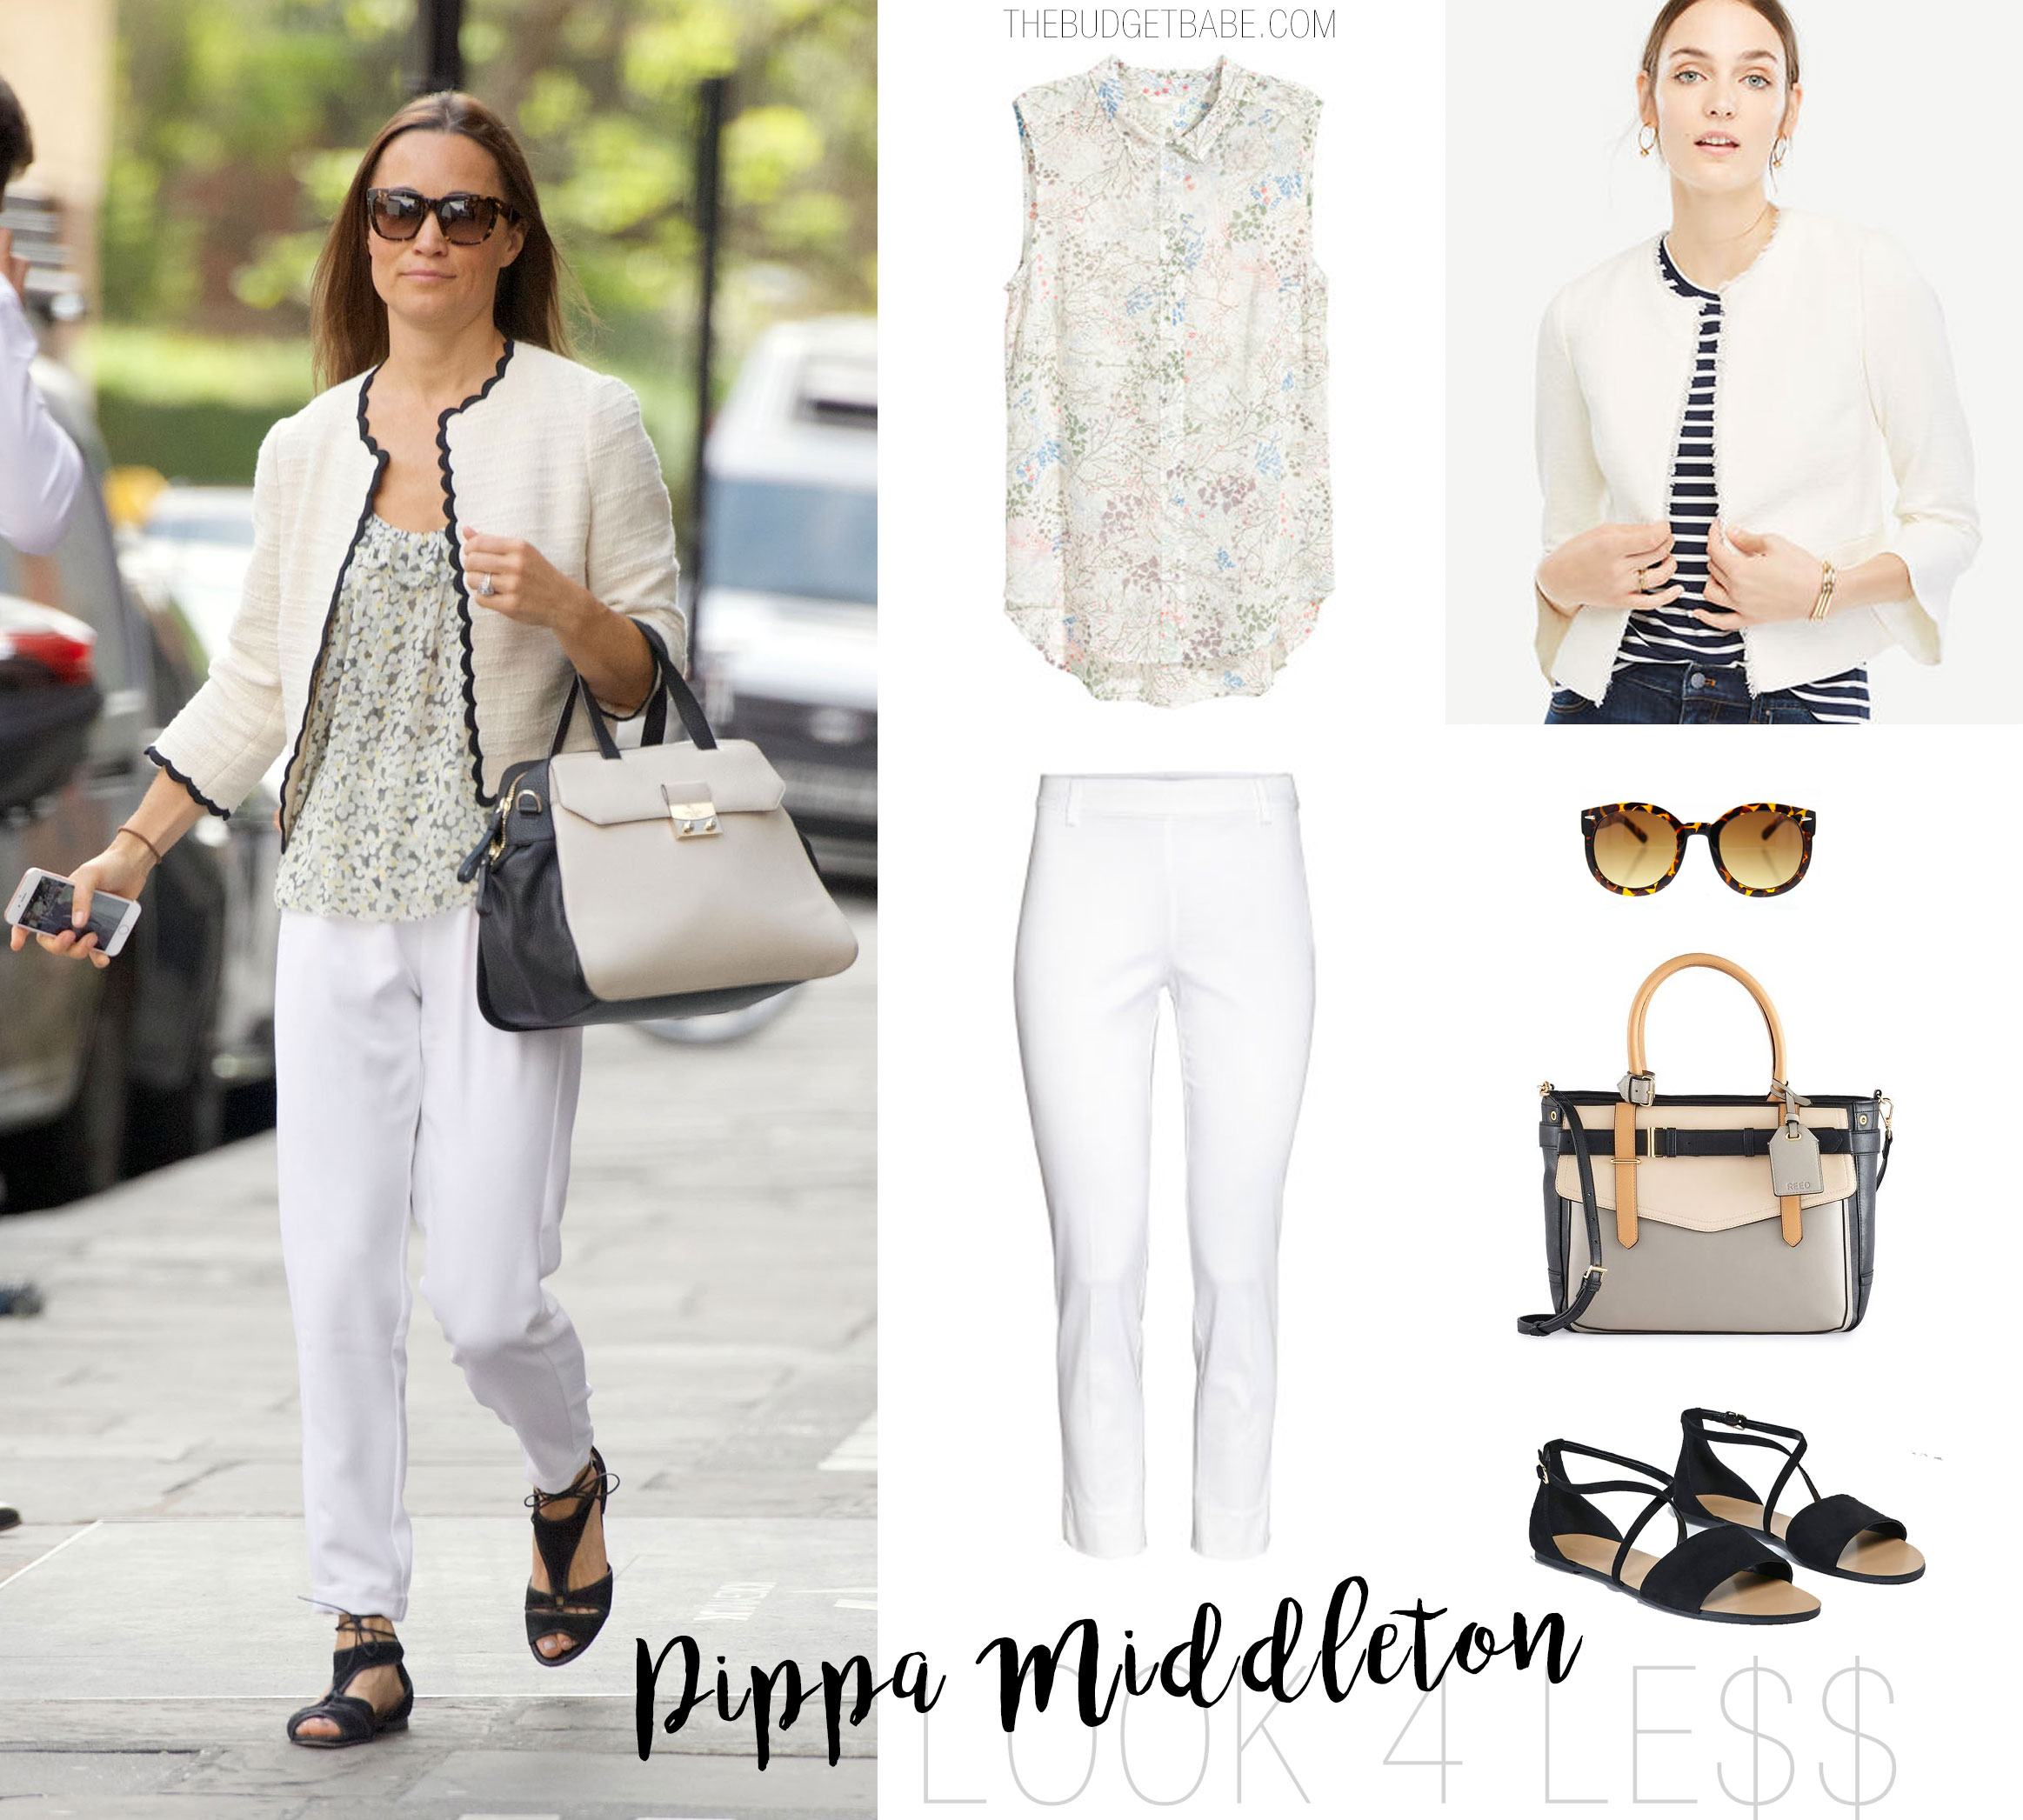 Pippa Middleton's summer style features a white tweed blazer with black scallop trim and white pants.